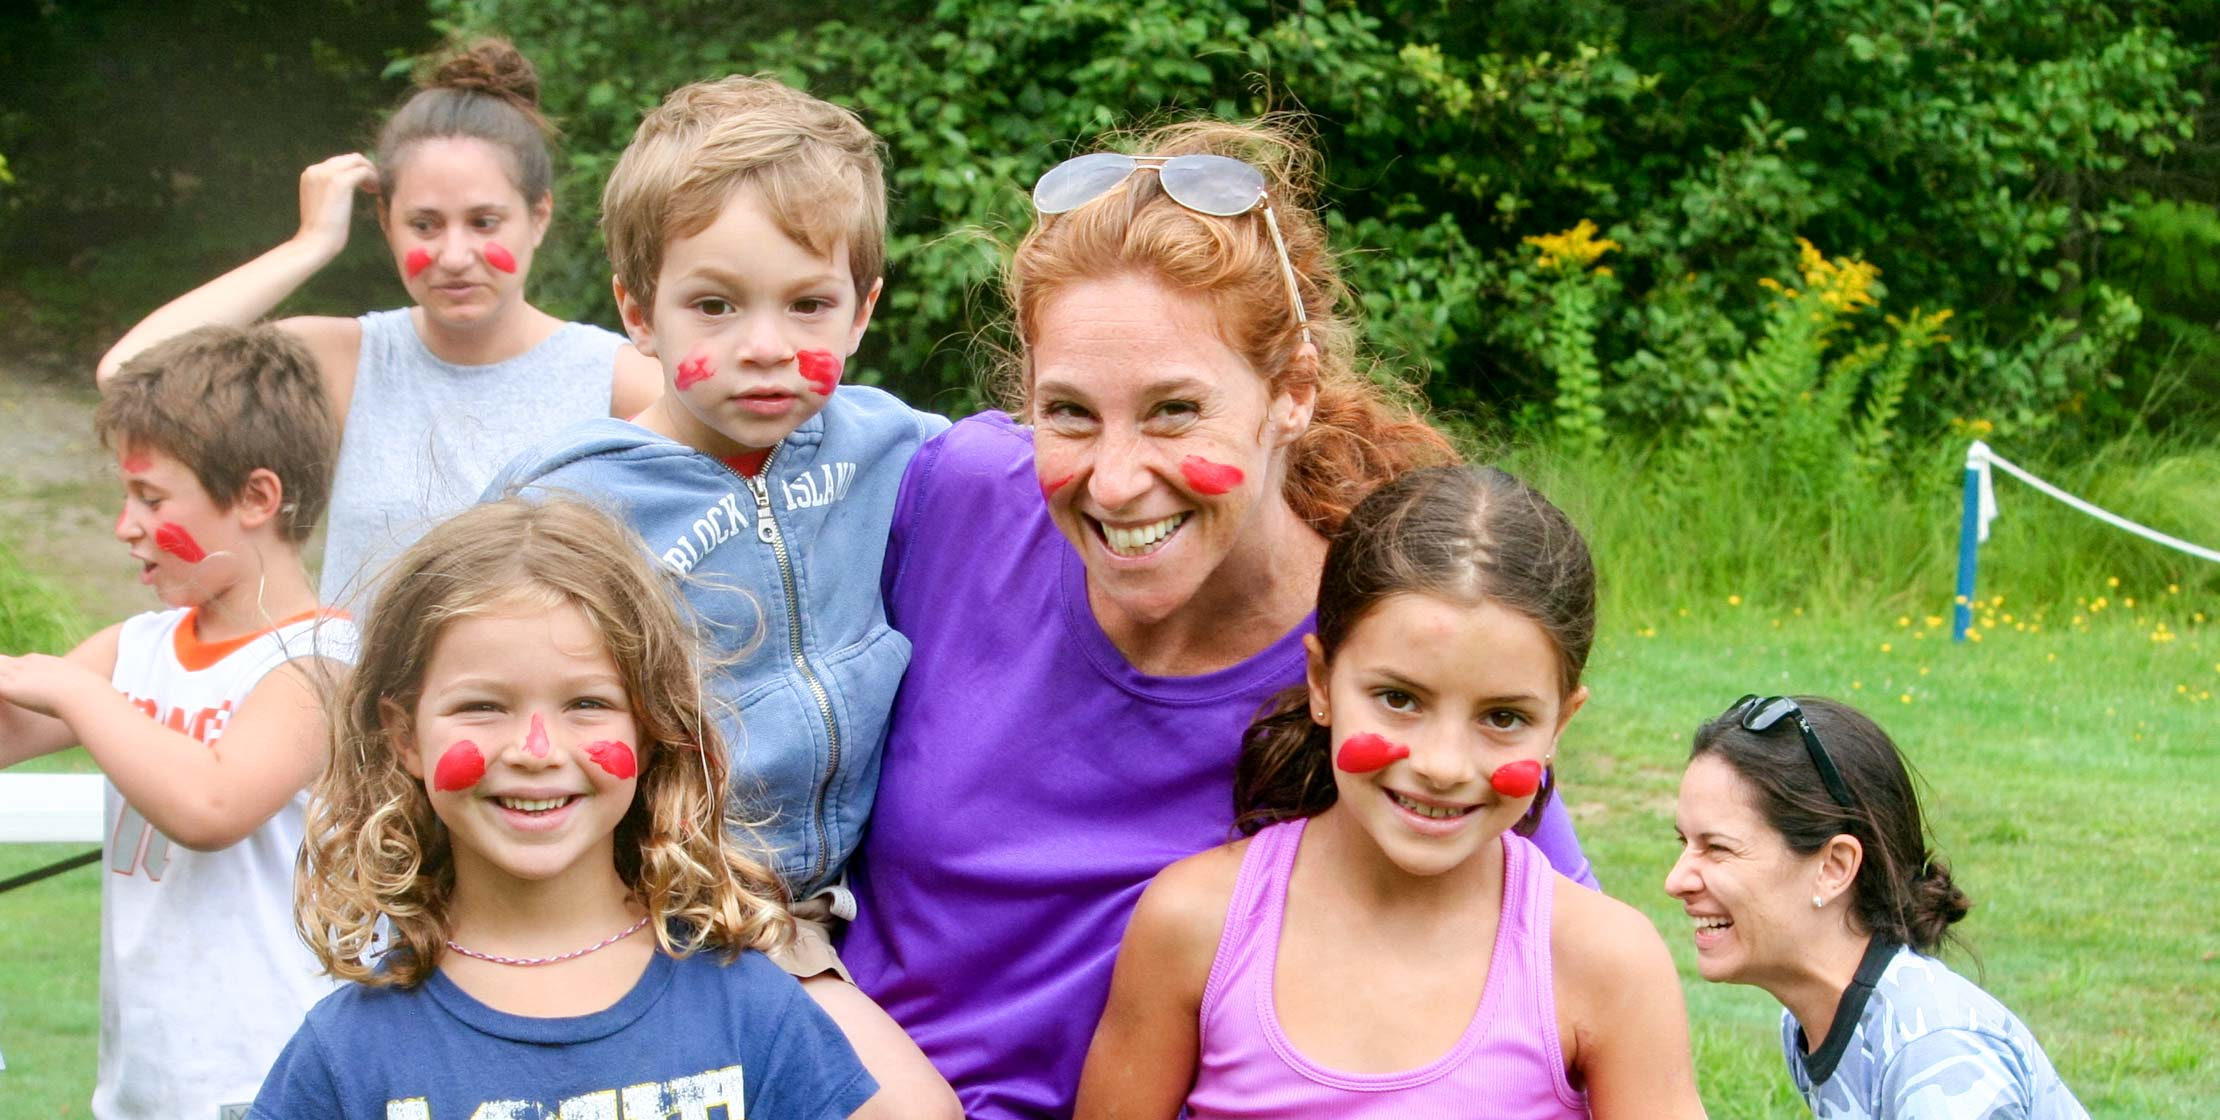 young campers and a red-headed woman with red paint on their faces